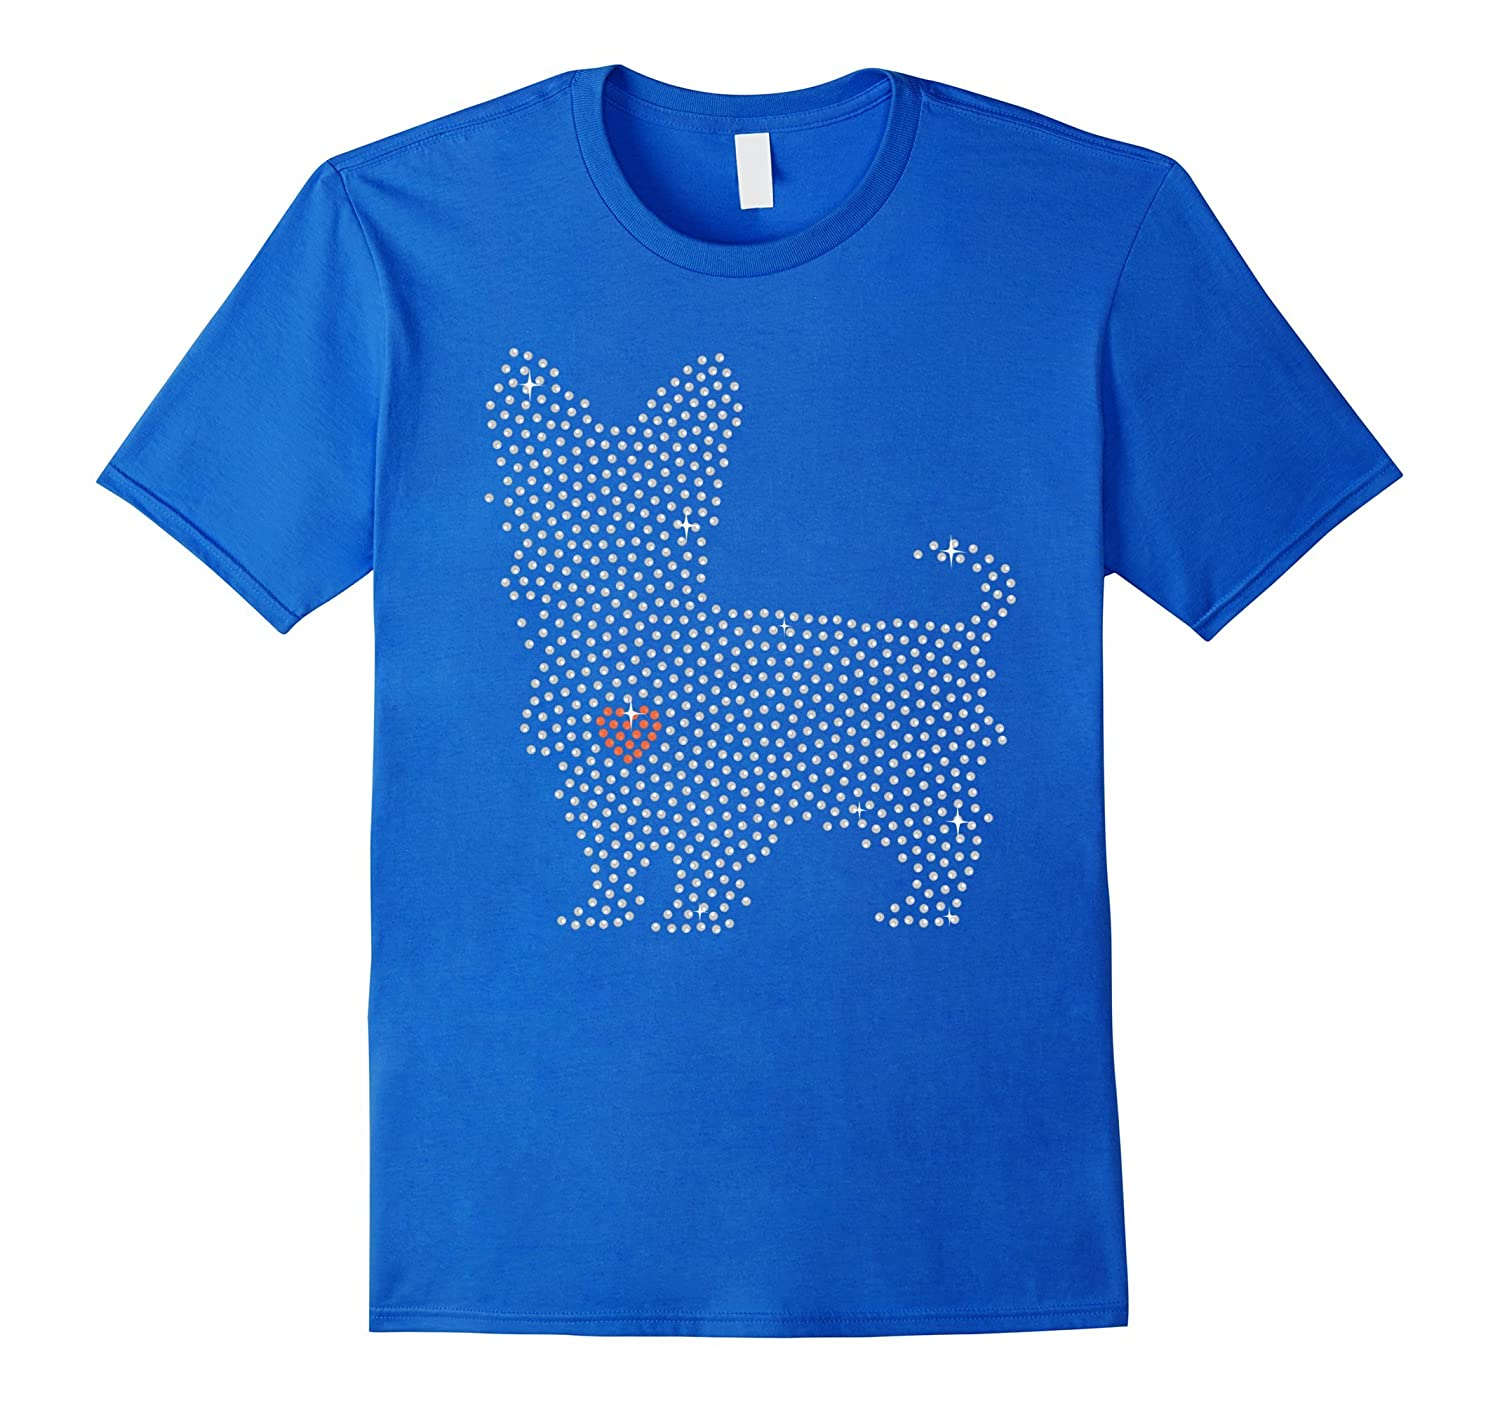 Yorkie tshirt i love my Yorkie with hearts-TH